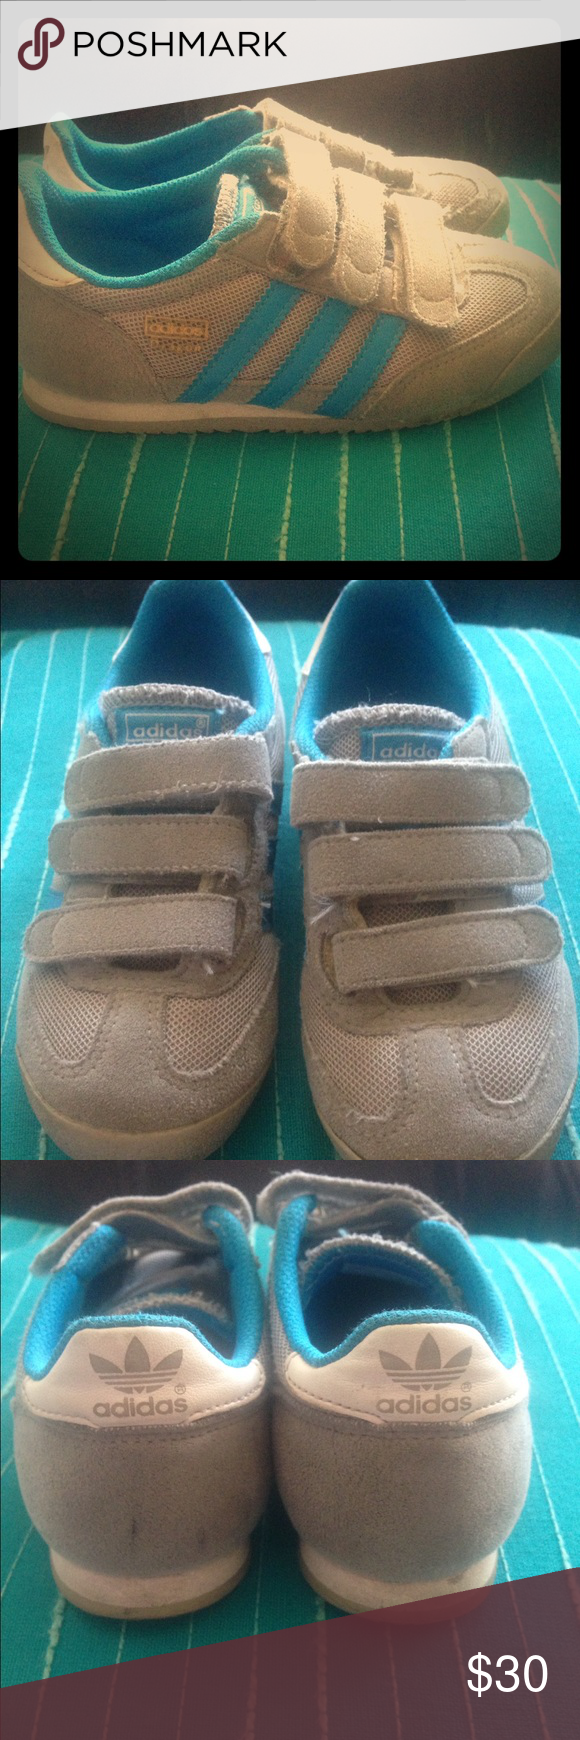 ⛔️SOLD⛔️Children adidas suede tennis 11 Used children adidas dragon tennis shoes .. These are sooo cute and still in good condition .. Gray suede Velcro with blue stripes and trimming sz 11.. Little dirty marks here and there .. Can be cleaned by the buyer I'm sure .. The last pic shoes the most obvious dirt mark Adidas Shoes